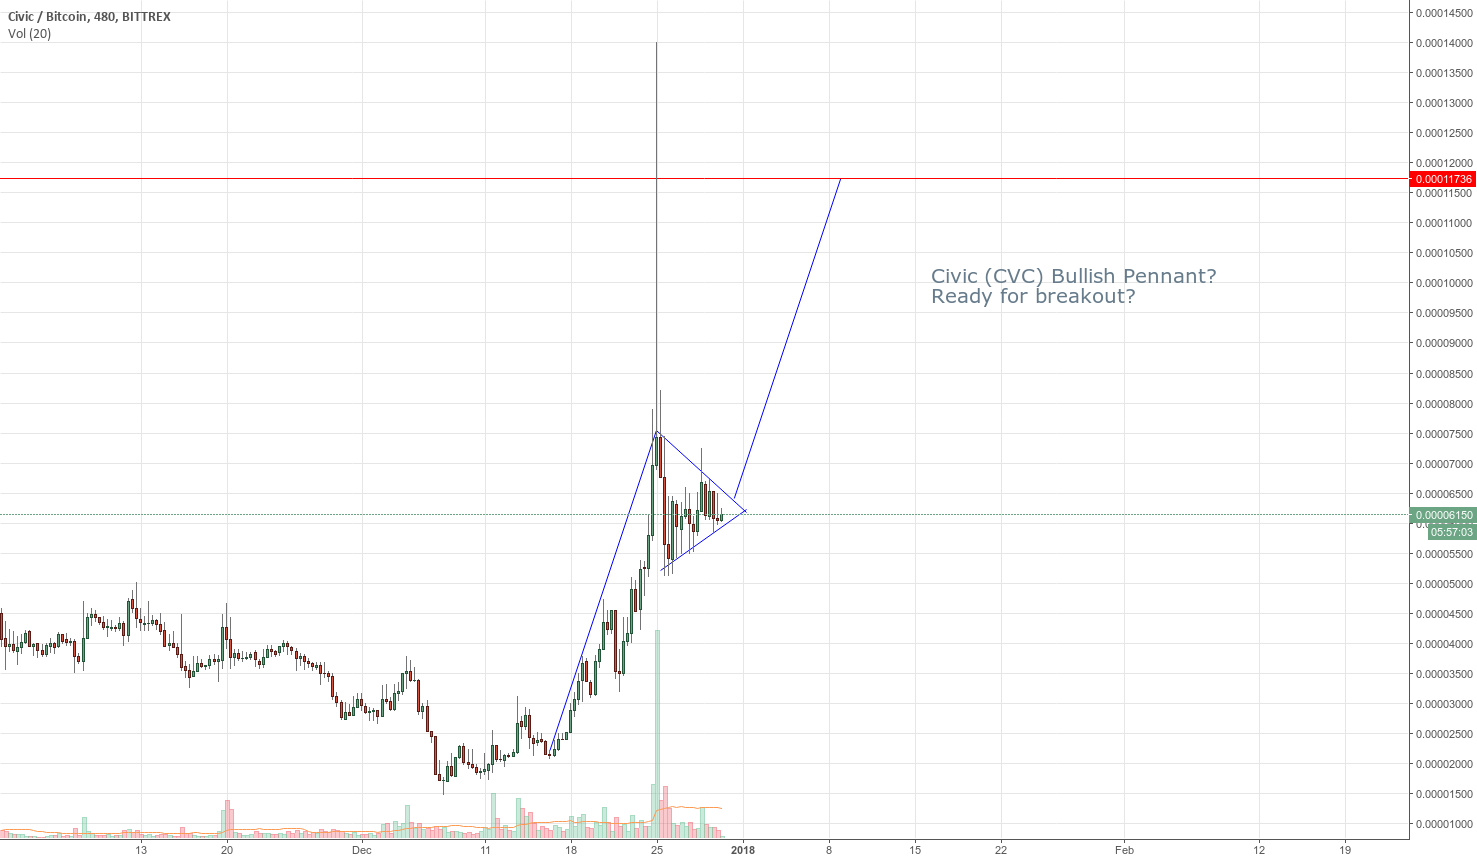 Civic (CVC) Ready for Breakout?